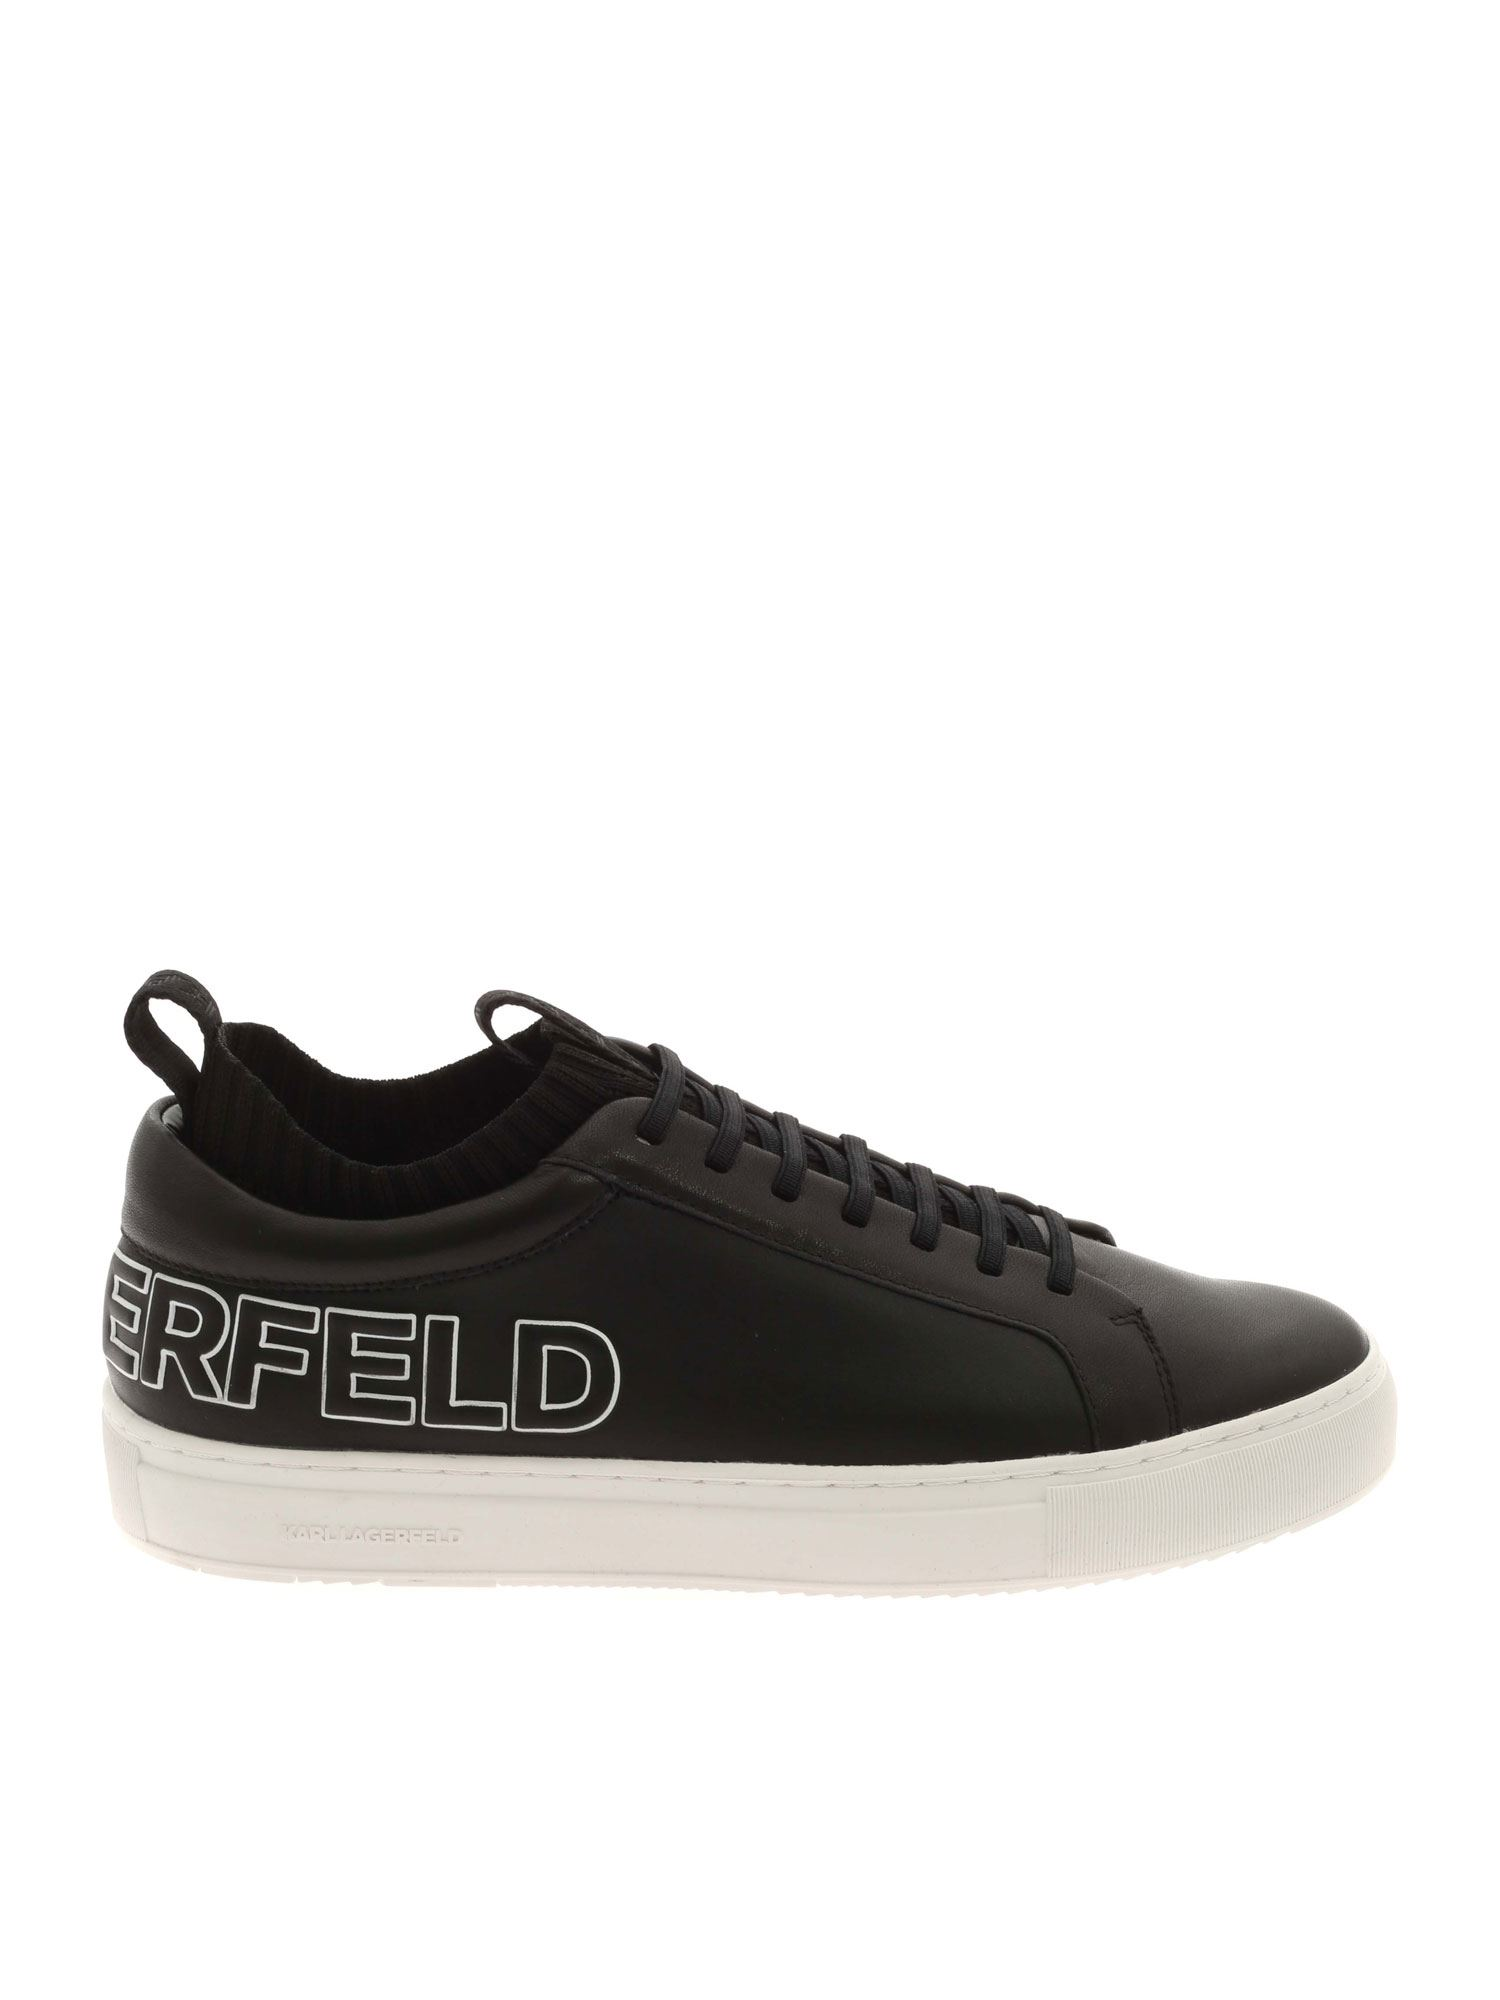 Karl Lagerfeld KUPSOLE TRACER SNEAKERS IN BLACK